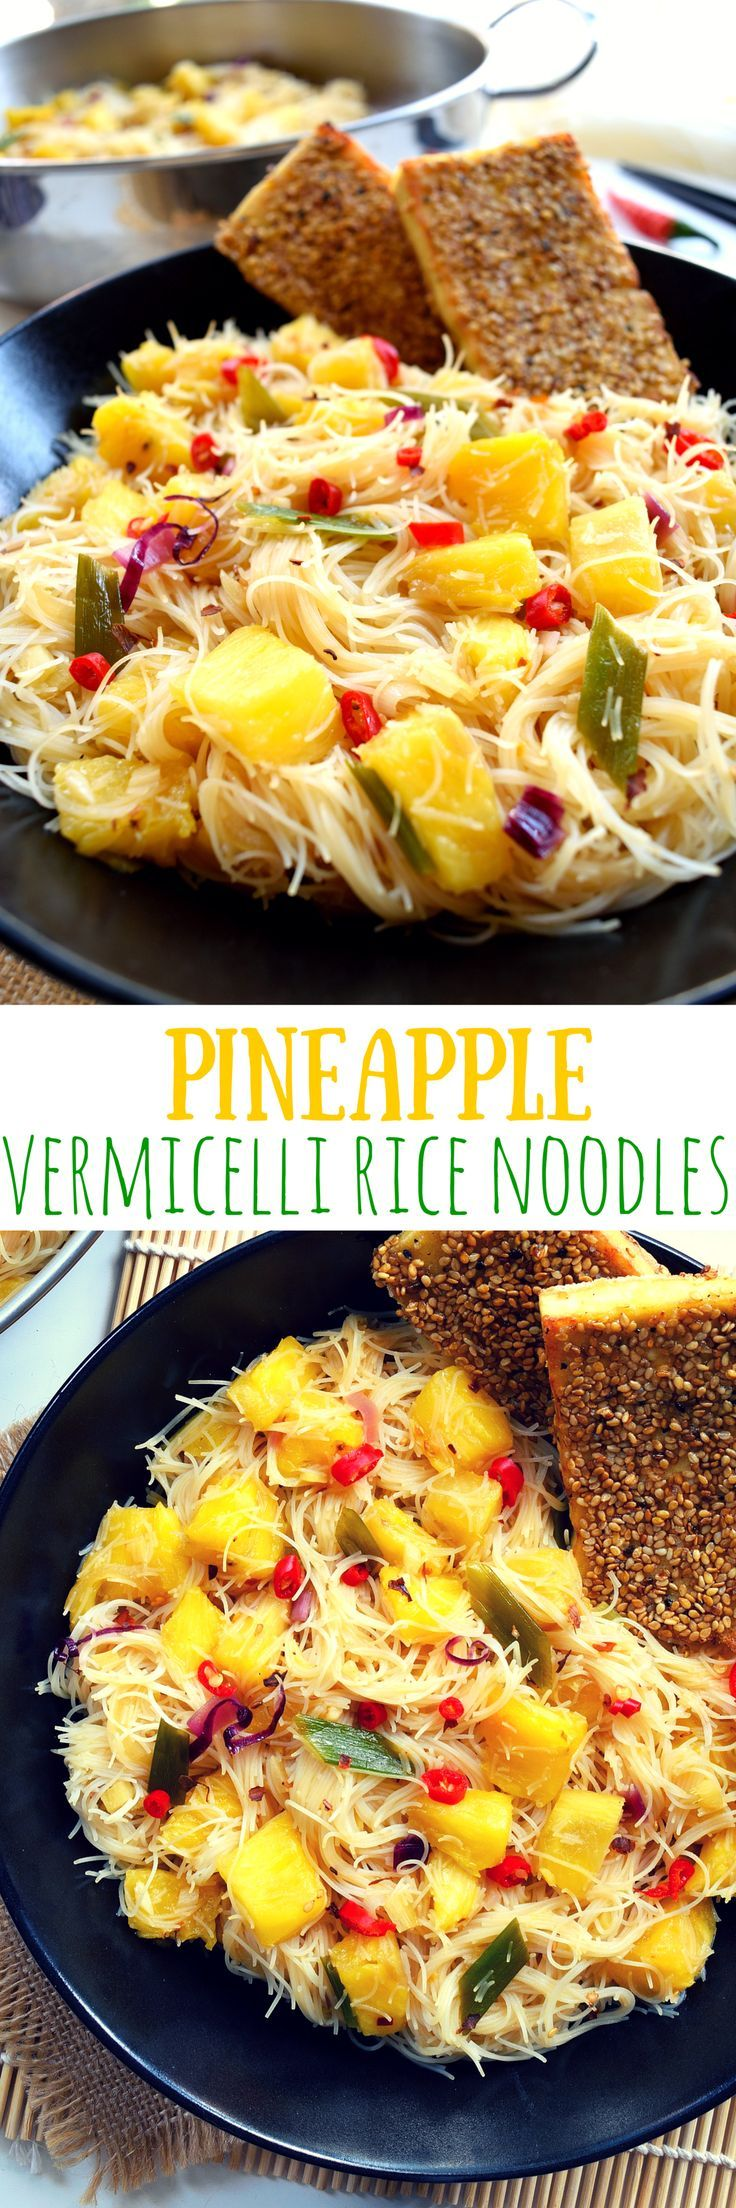 These pineapple vermicelli rice noodles are a sweet, savory, (slightly) spicy way to get your pineapple fix this summer. They're delicious served along with sesame-crusted tofu for a delightful nuttiness and a healthy dose of protein. A great vegan or vegetarian main dish.